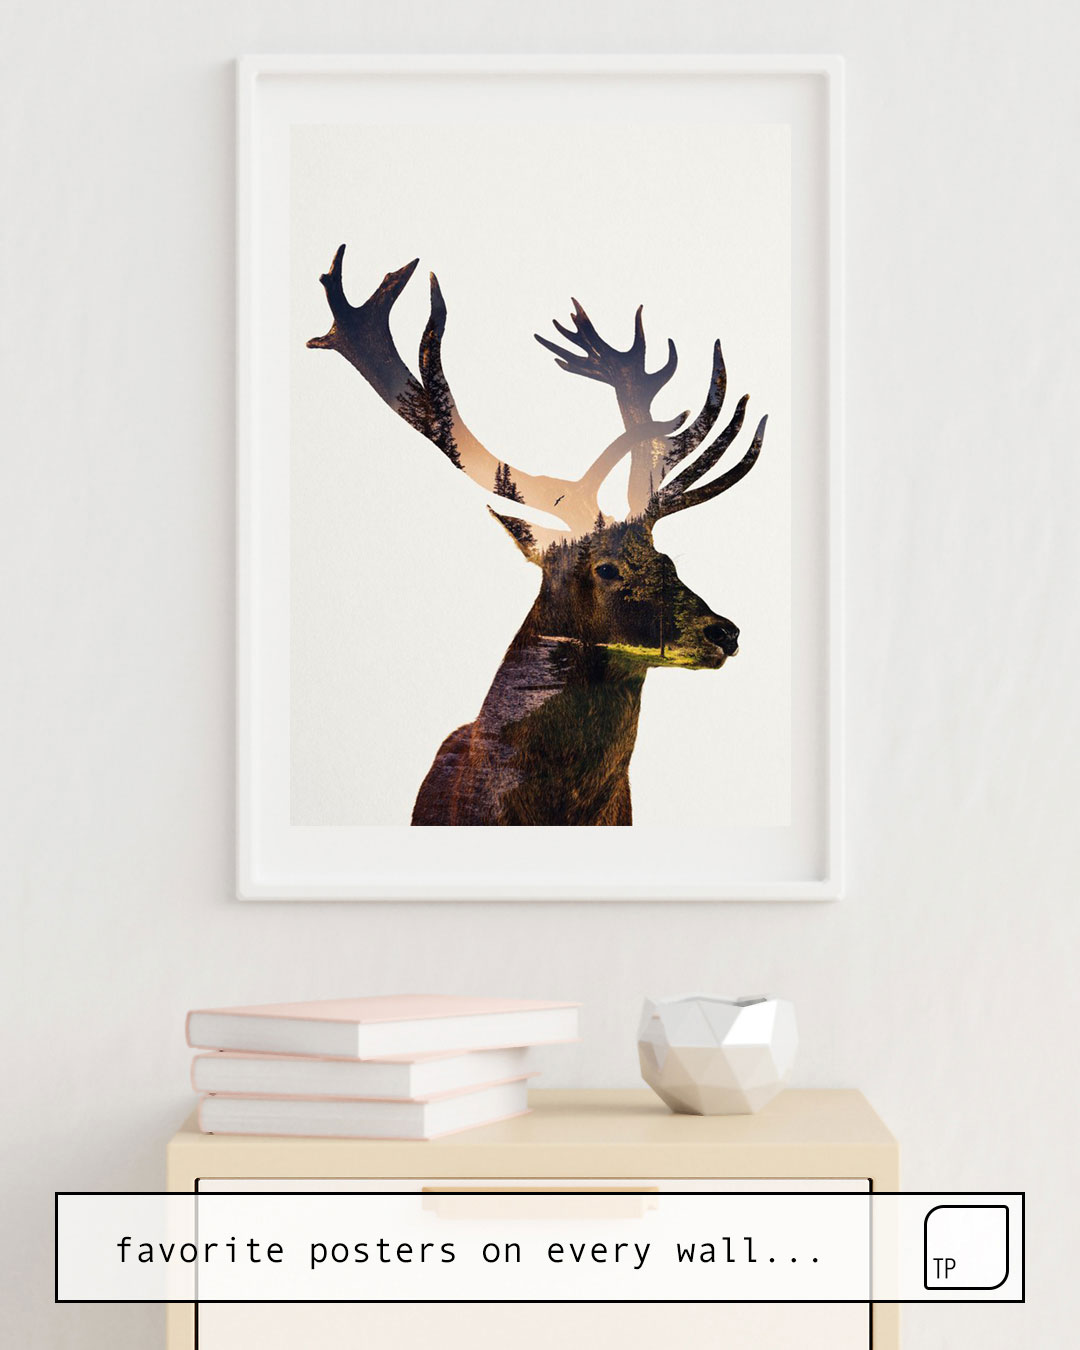 The photo shows an example of furnishing with the motif DEER by Andreas Lie as mural